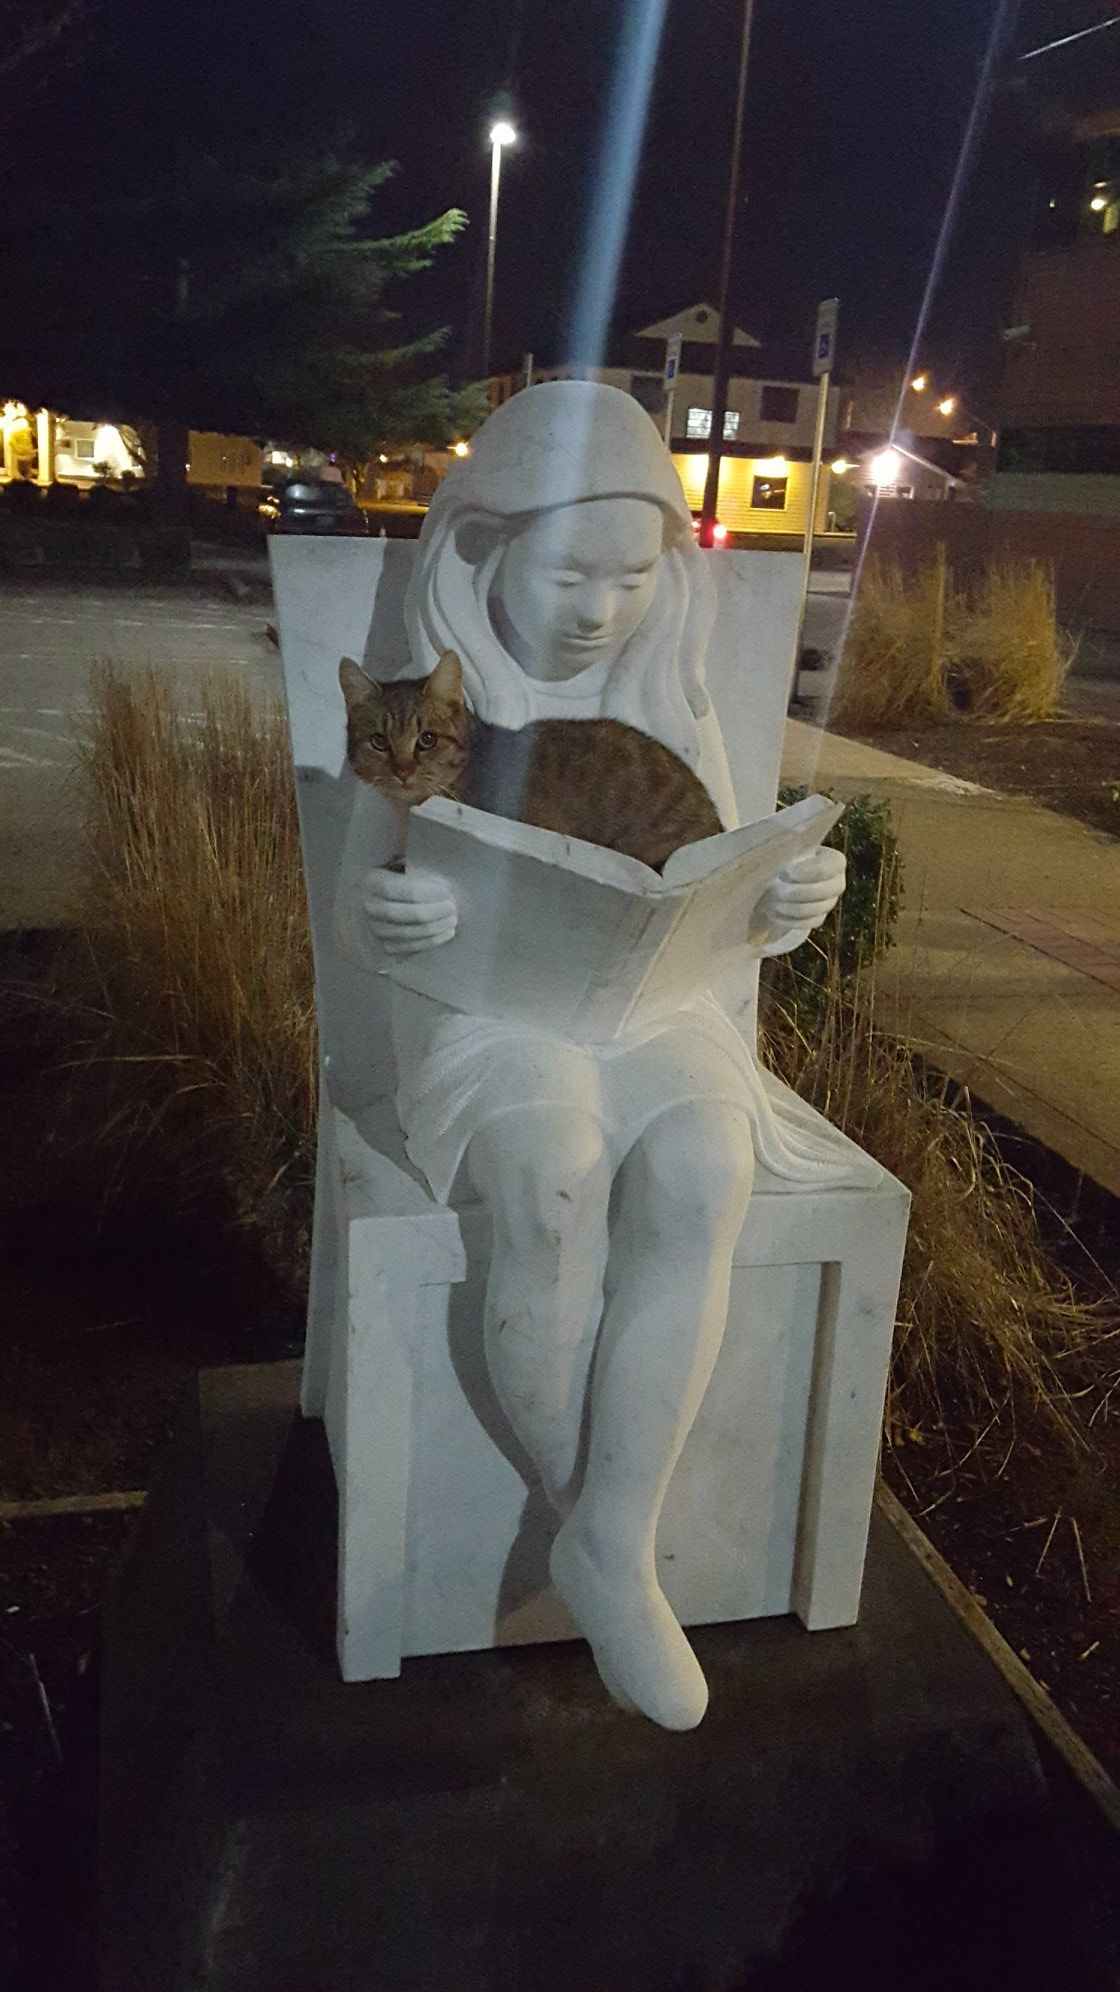 I guess being a statue isn't the only reason that girl is never going to move from that spot.